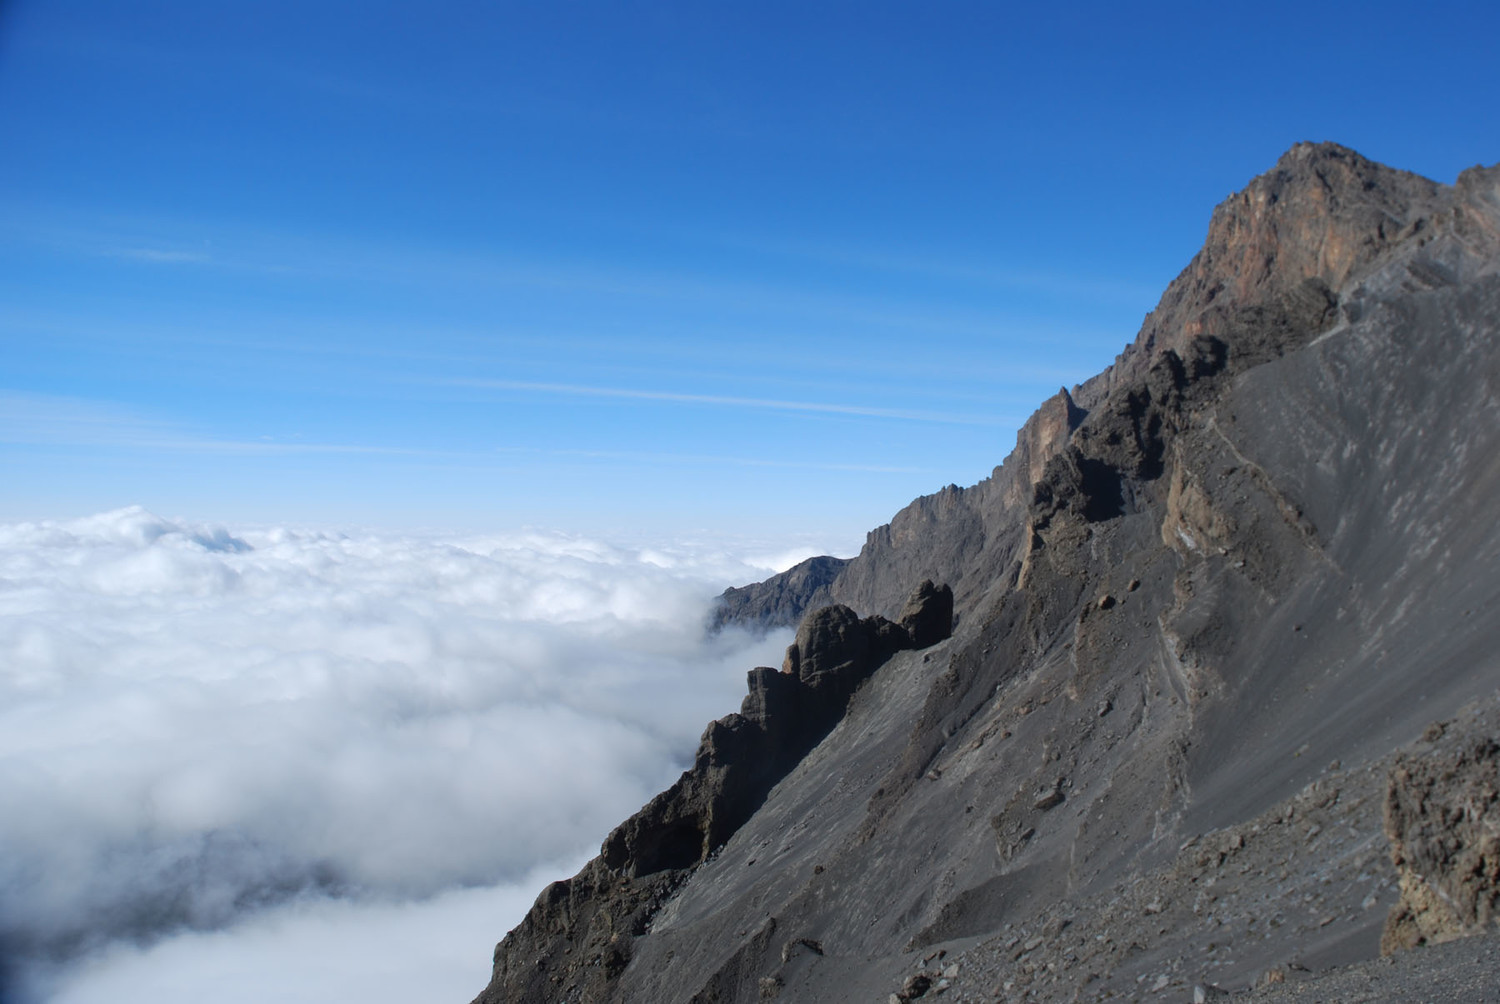 Mount Meru from the ascent route